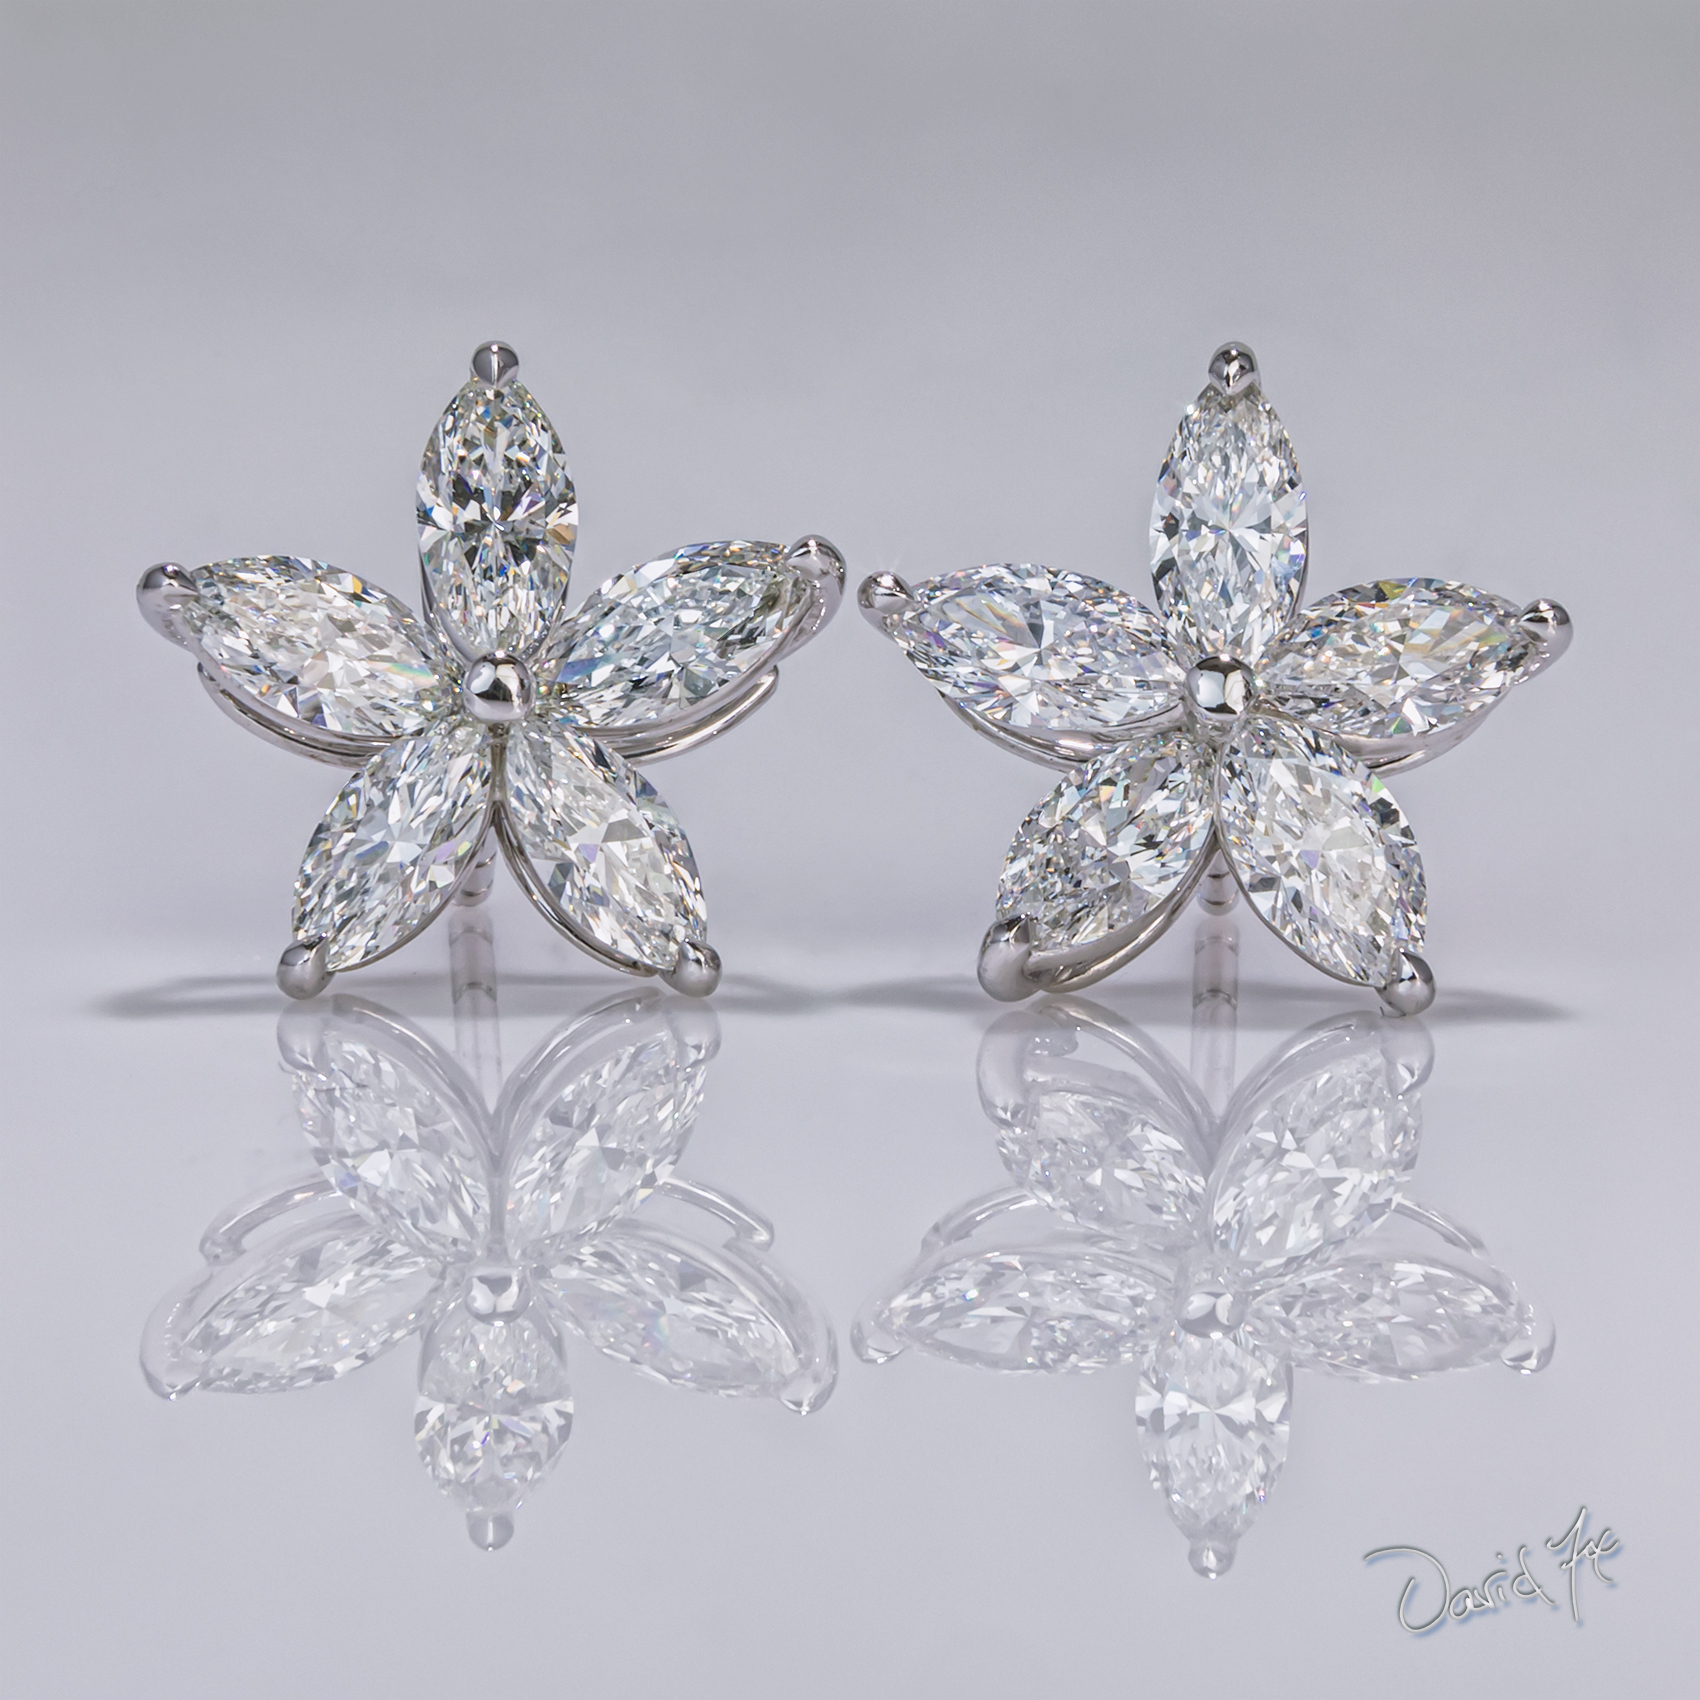 Diamond Earrings - DePrisco Jewelers Wellesley MA.